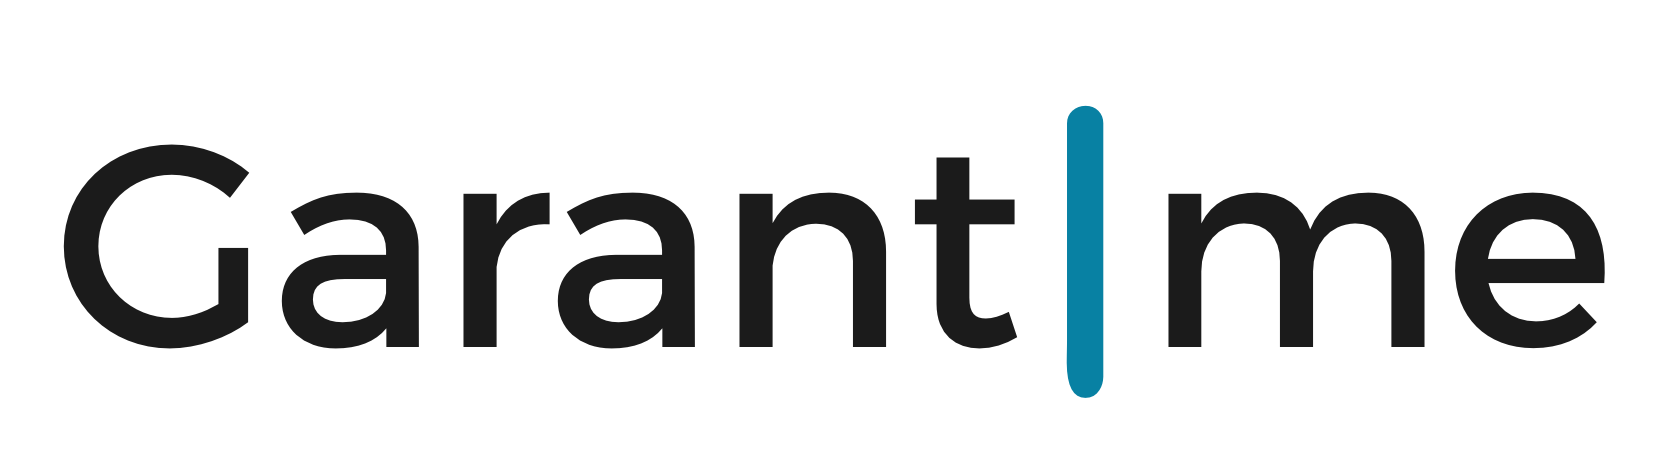 Garantme_black_logo_no_background